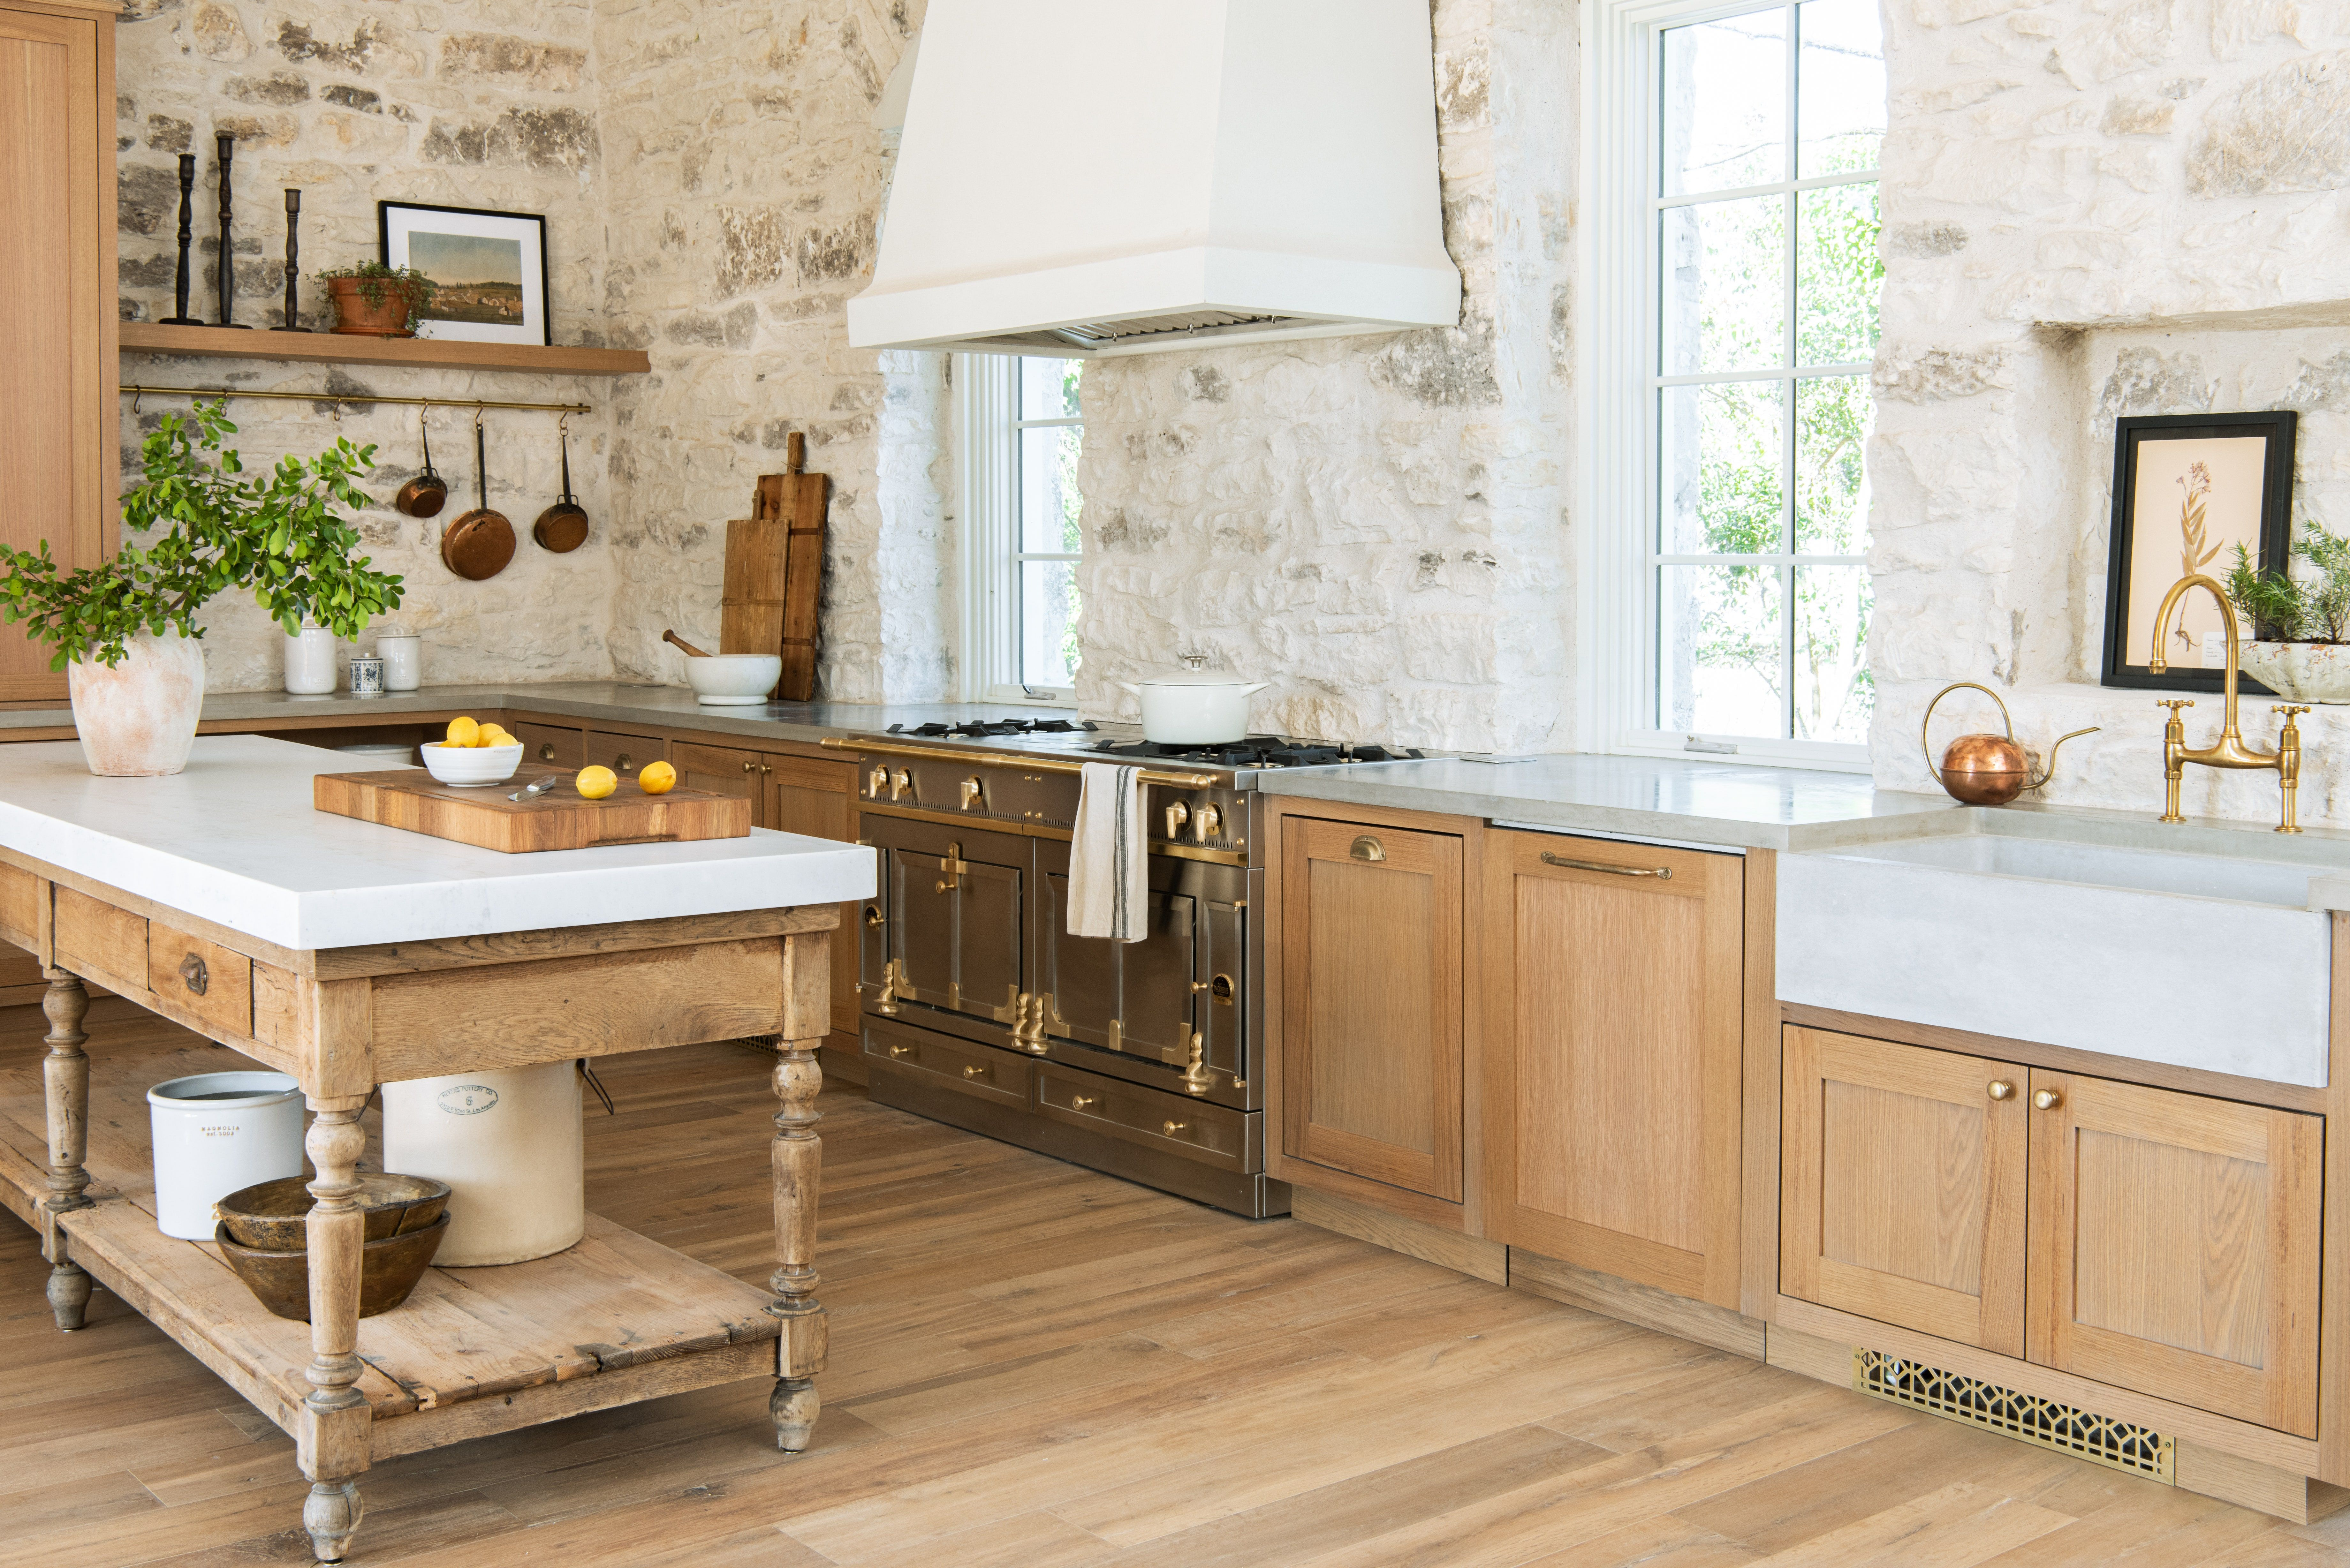 Joanna Gaines Shows Off The Set Of Her Future Cooking Show European Farmhouse Kitchen Joanna Gaines Kitchen Kitchen Remodel